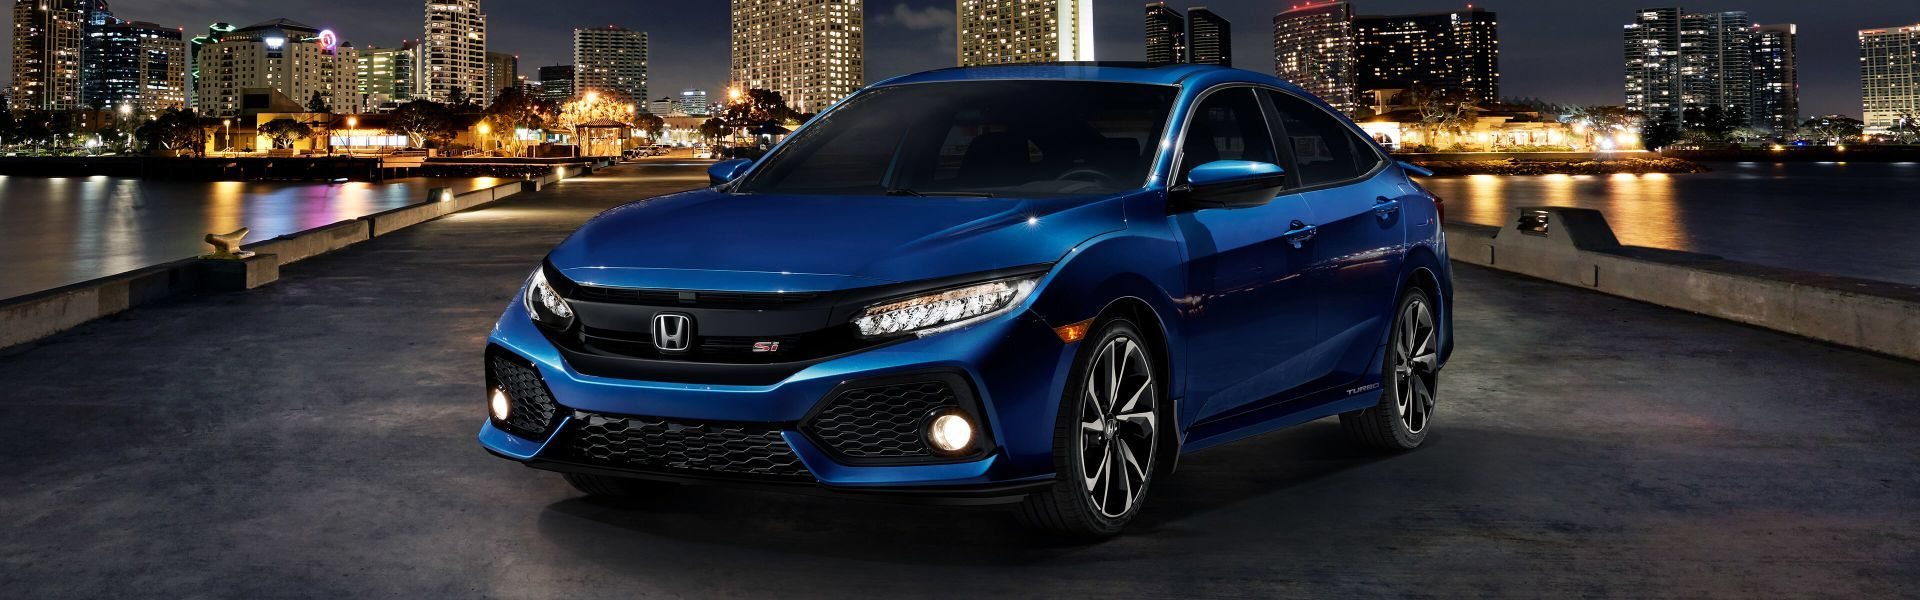 2018 Honda Civic - Pros Vs Cons